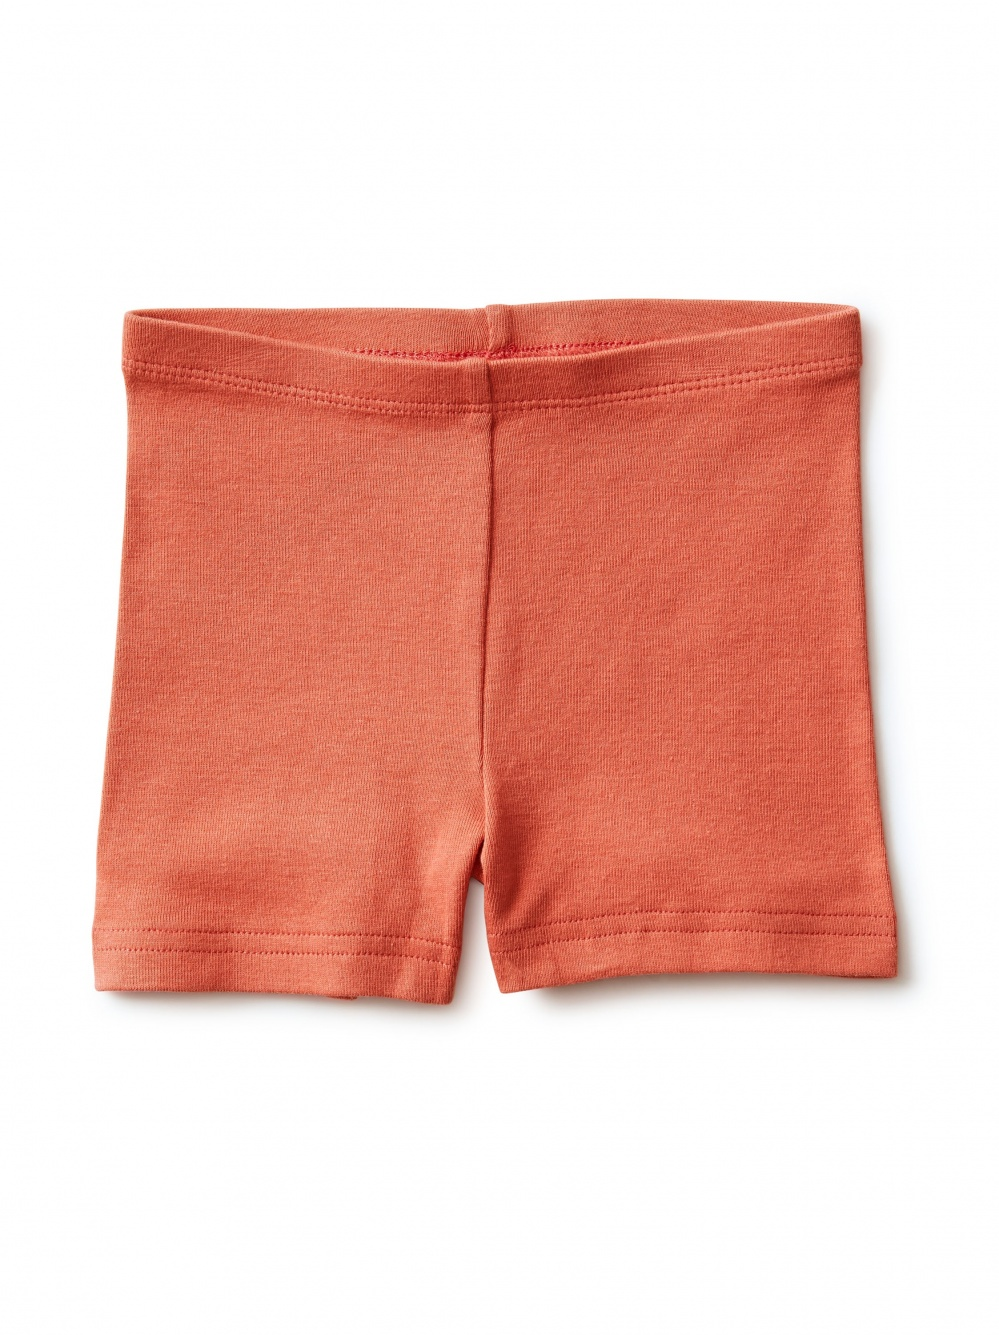 Somersault Shorts